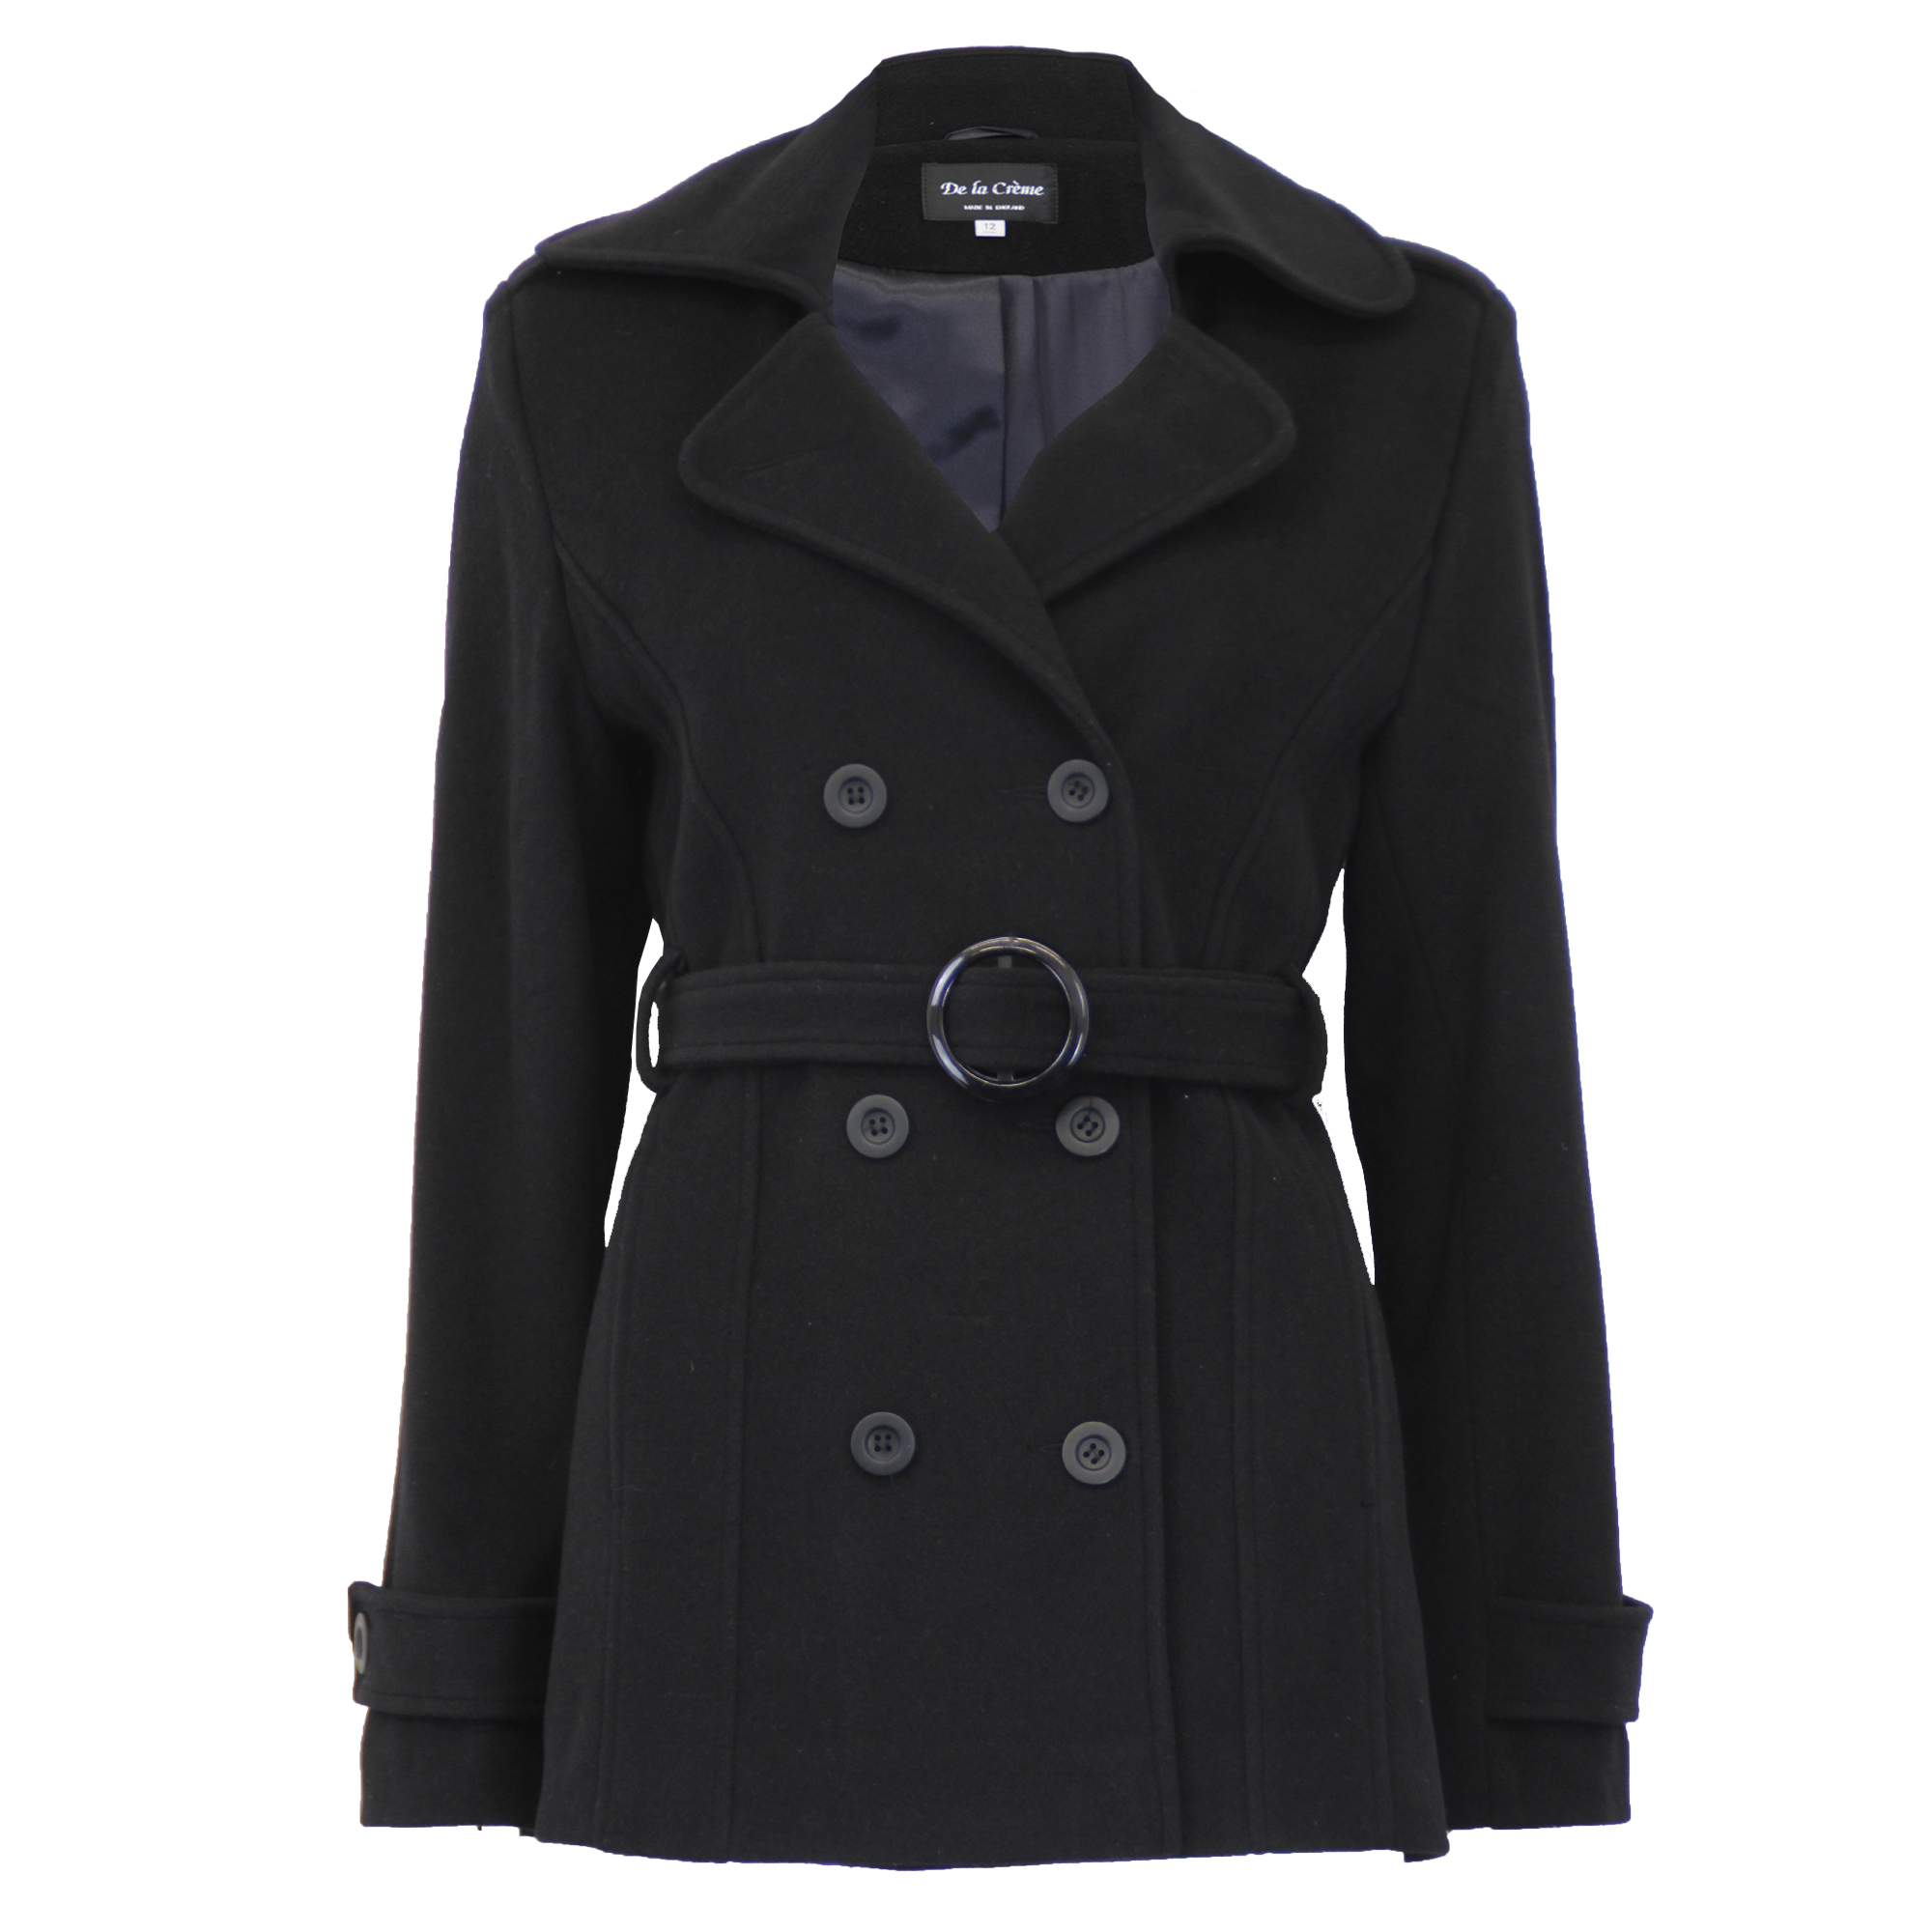 Ladies-Wool-Cashmere-Coat-Womens-Jacket-Double-Breasted-Belt-Checked-Trench-New thumbnail 4